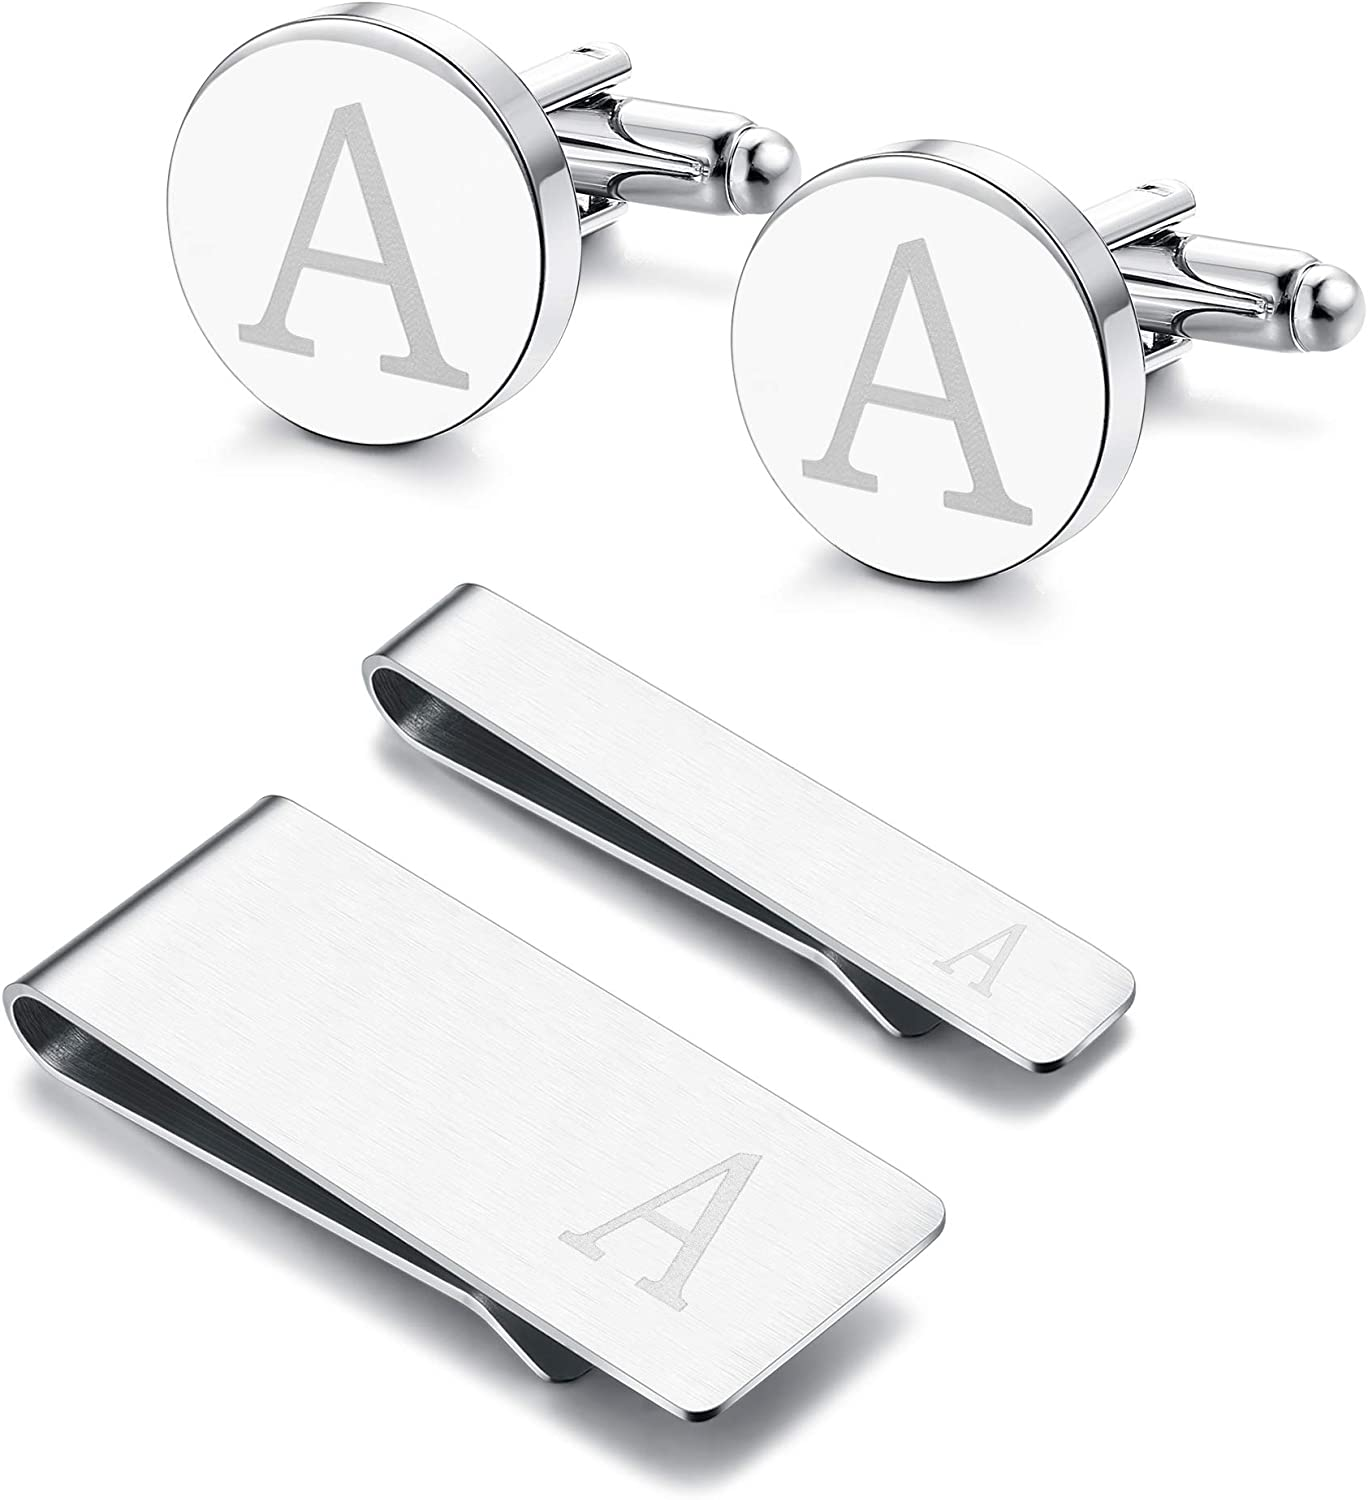 Subiceto 4 PCS Tie Bar Money Clip Cufflinks for Men Stainless Steel Personalized Initials Alphabet A-Z Business Gift Set